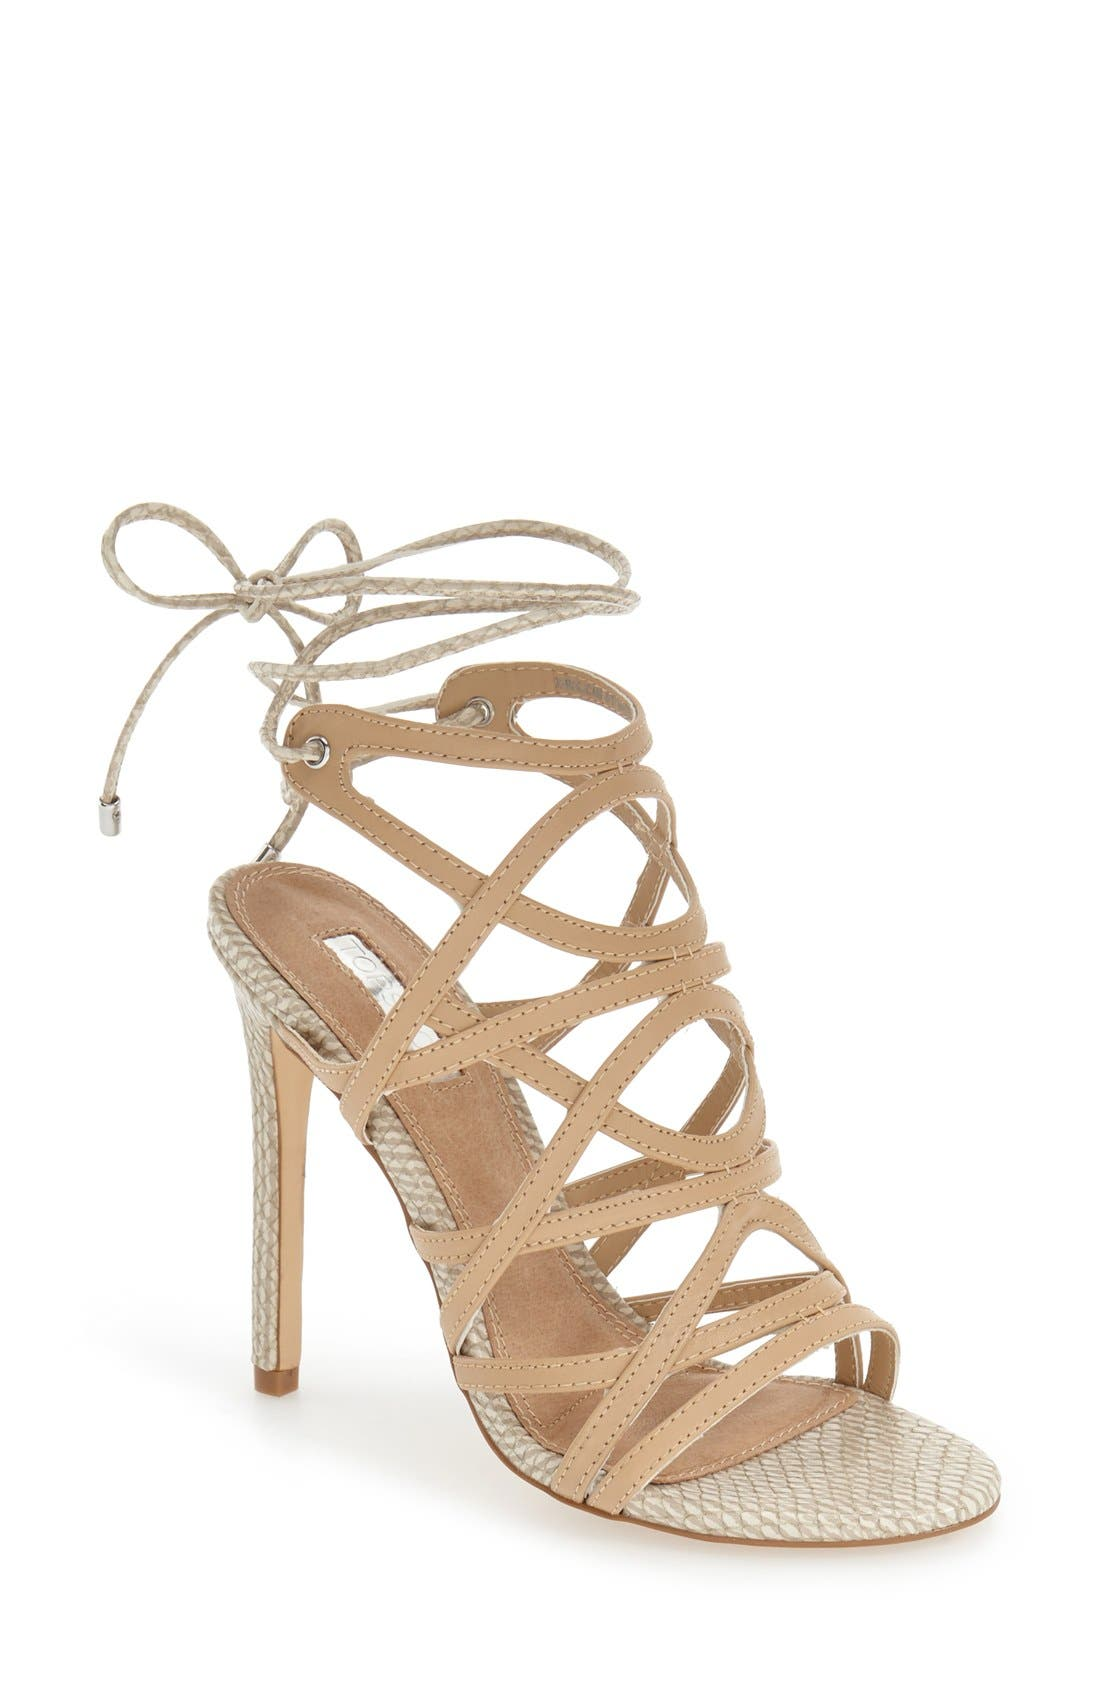 Alternate Image 1 Selected - Topshop 'Rascal' Cage Sandal (Women)